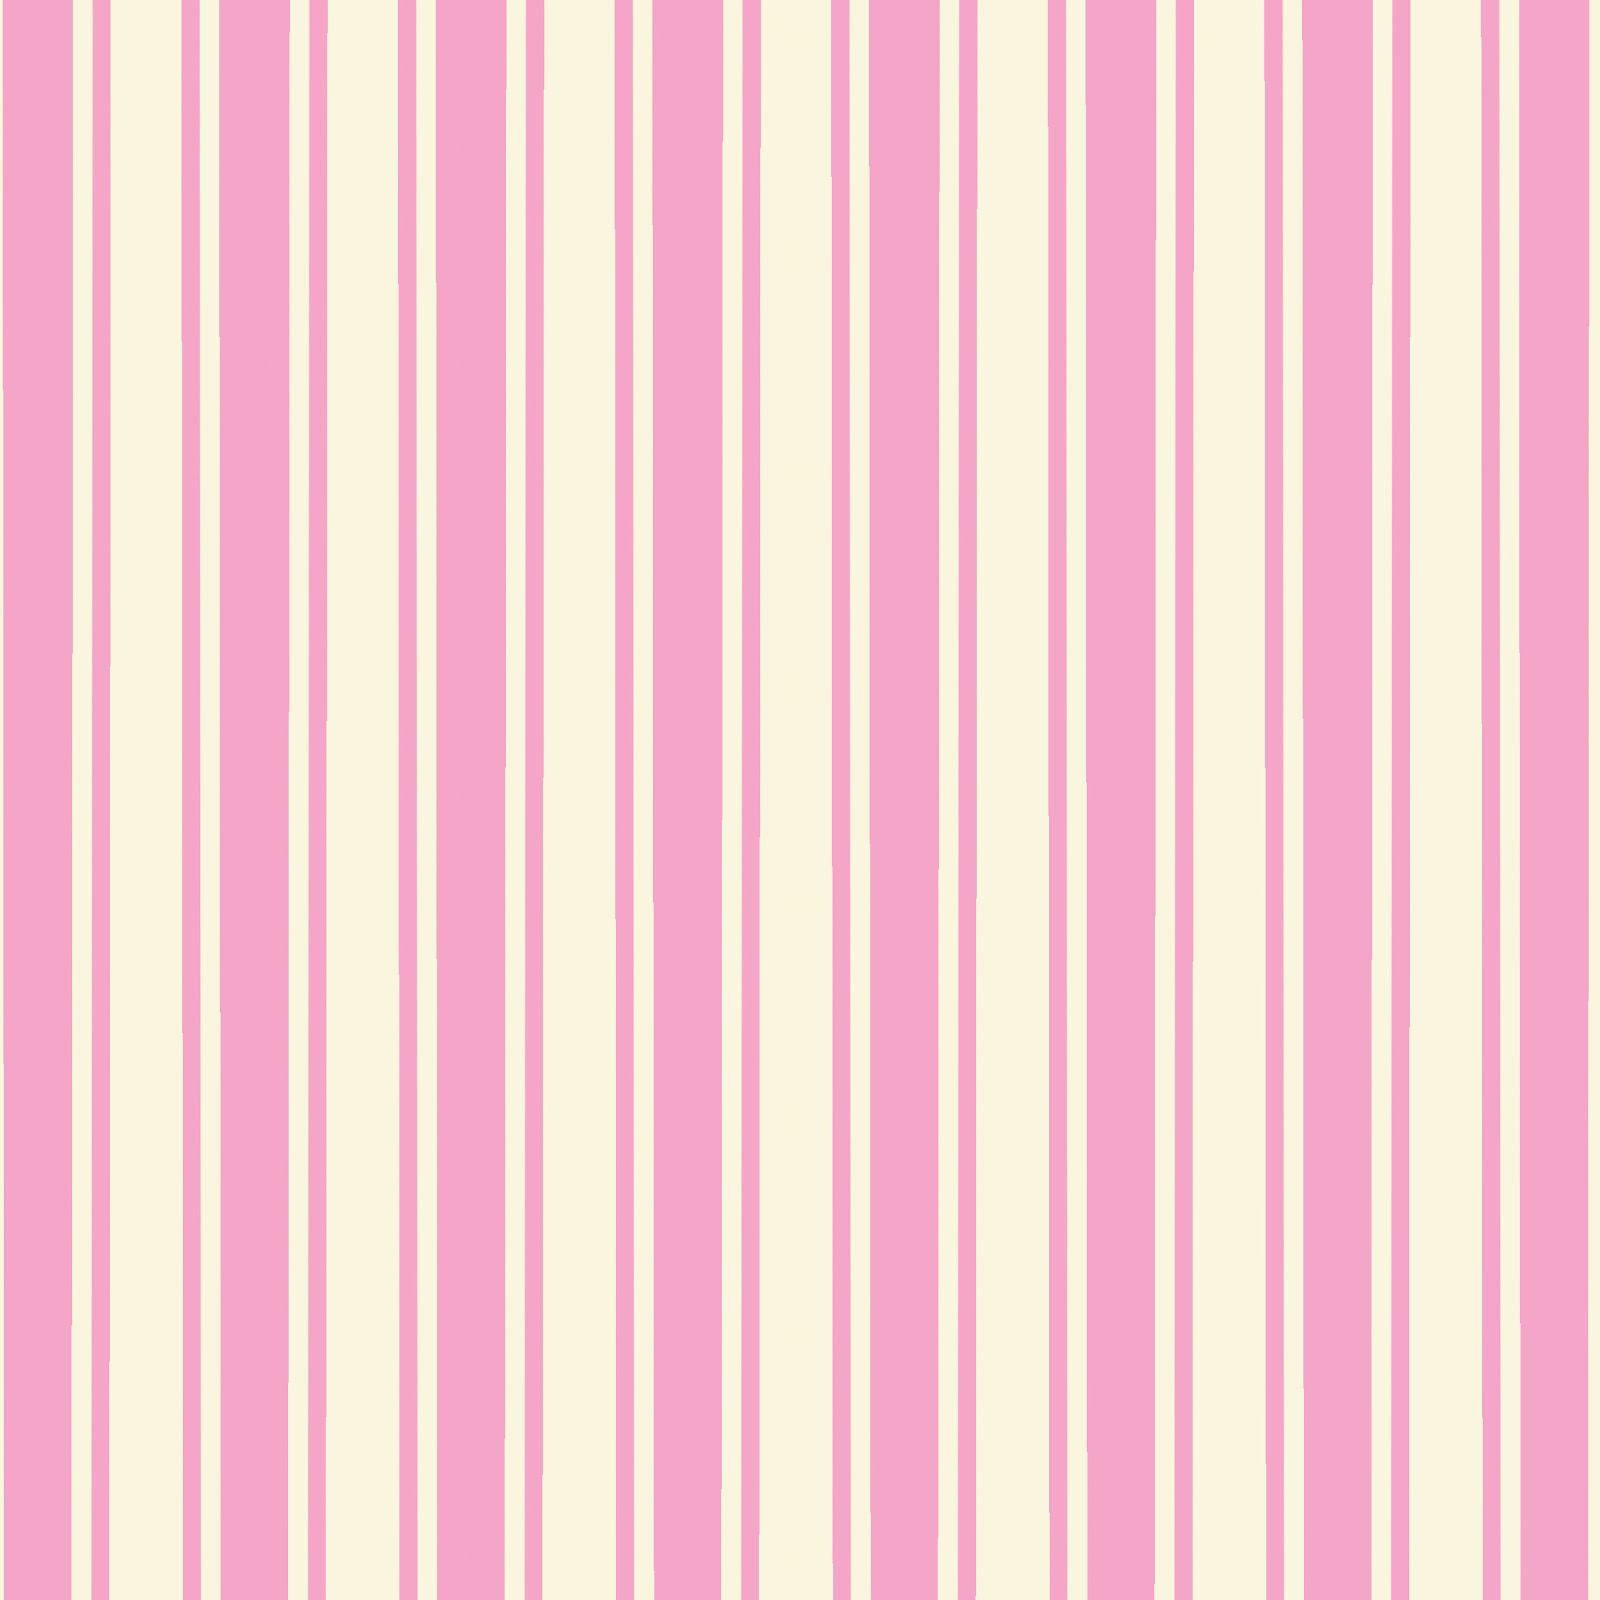 How To Wallpaper Patterned Paper